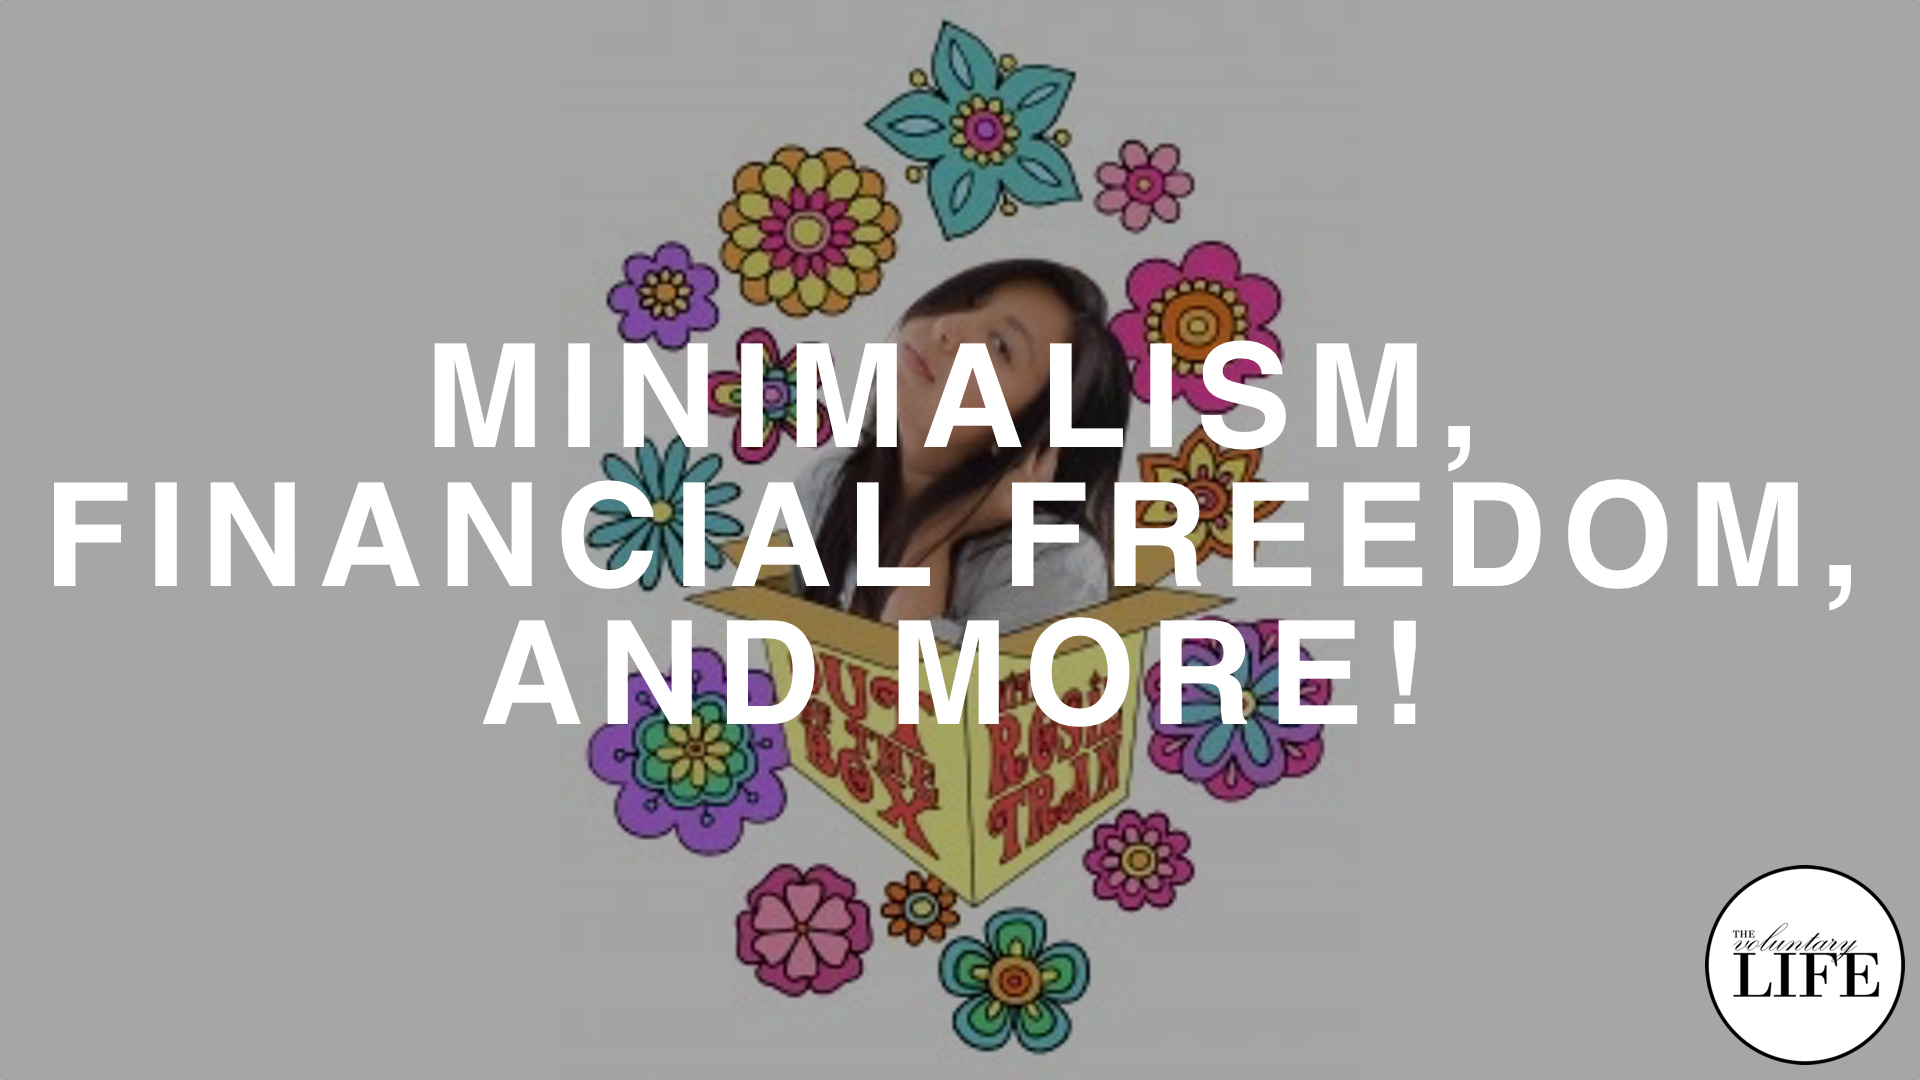 190 Out Of The Box Interview: Minimalism, Financial Freedom, And More! With Rosie Tran